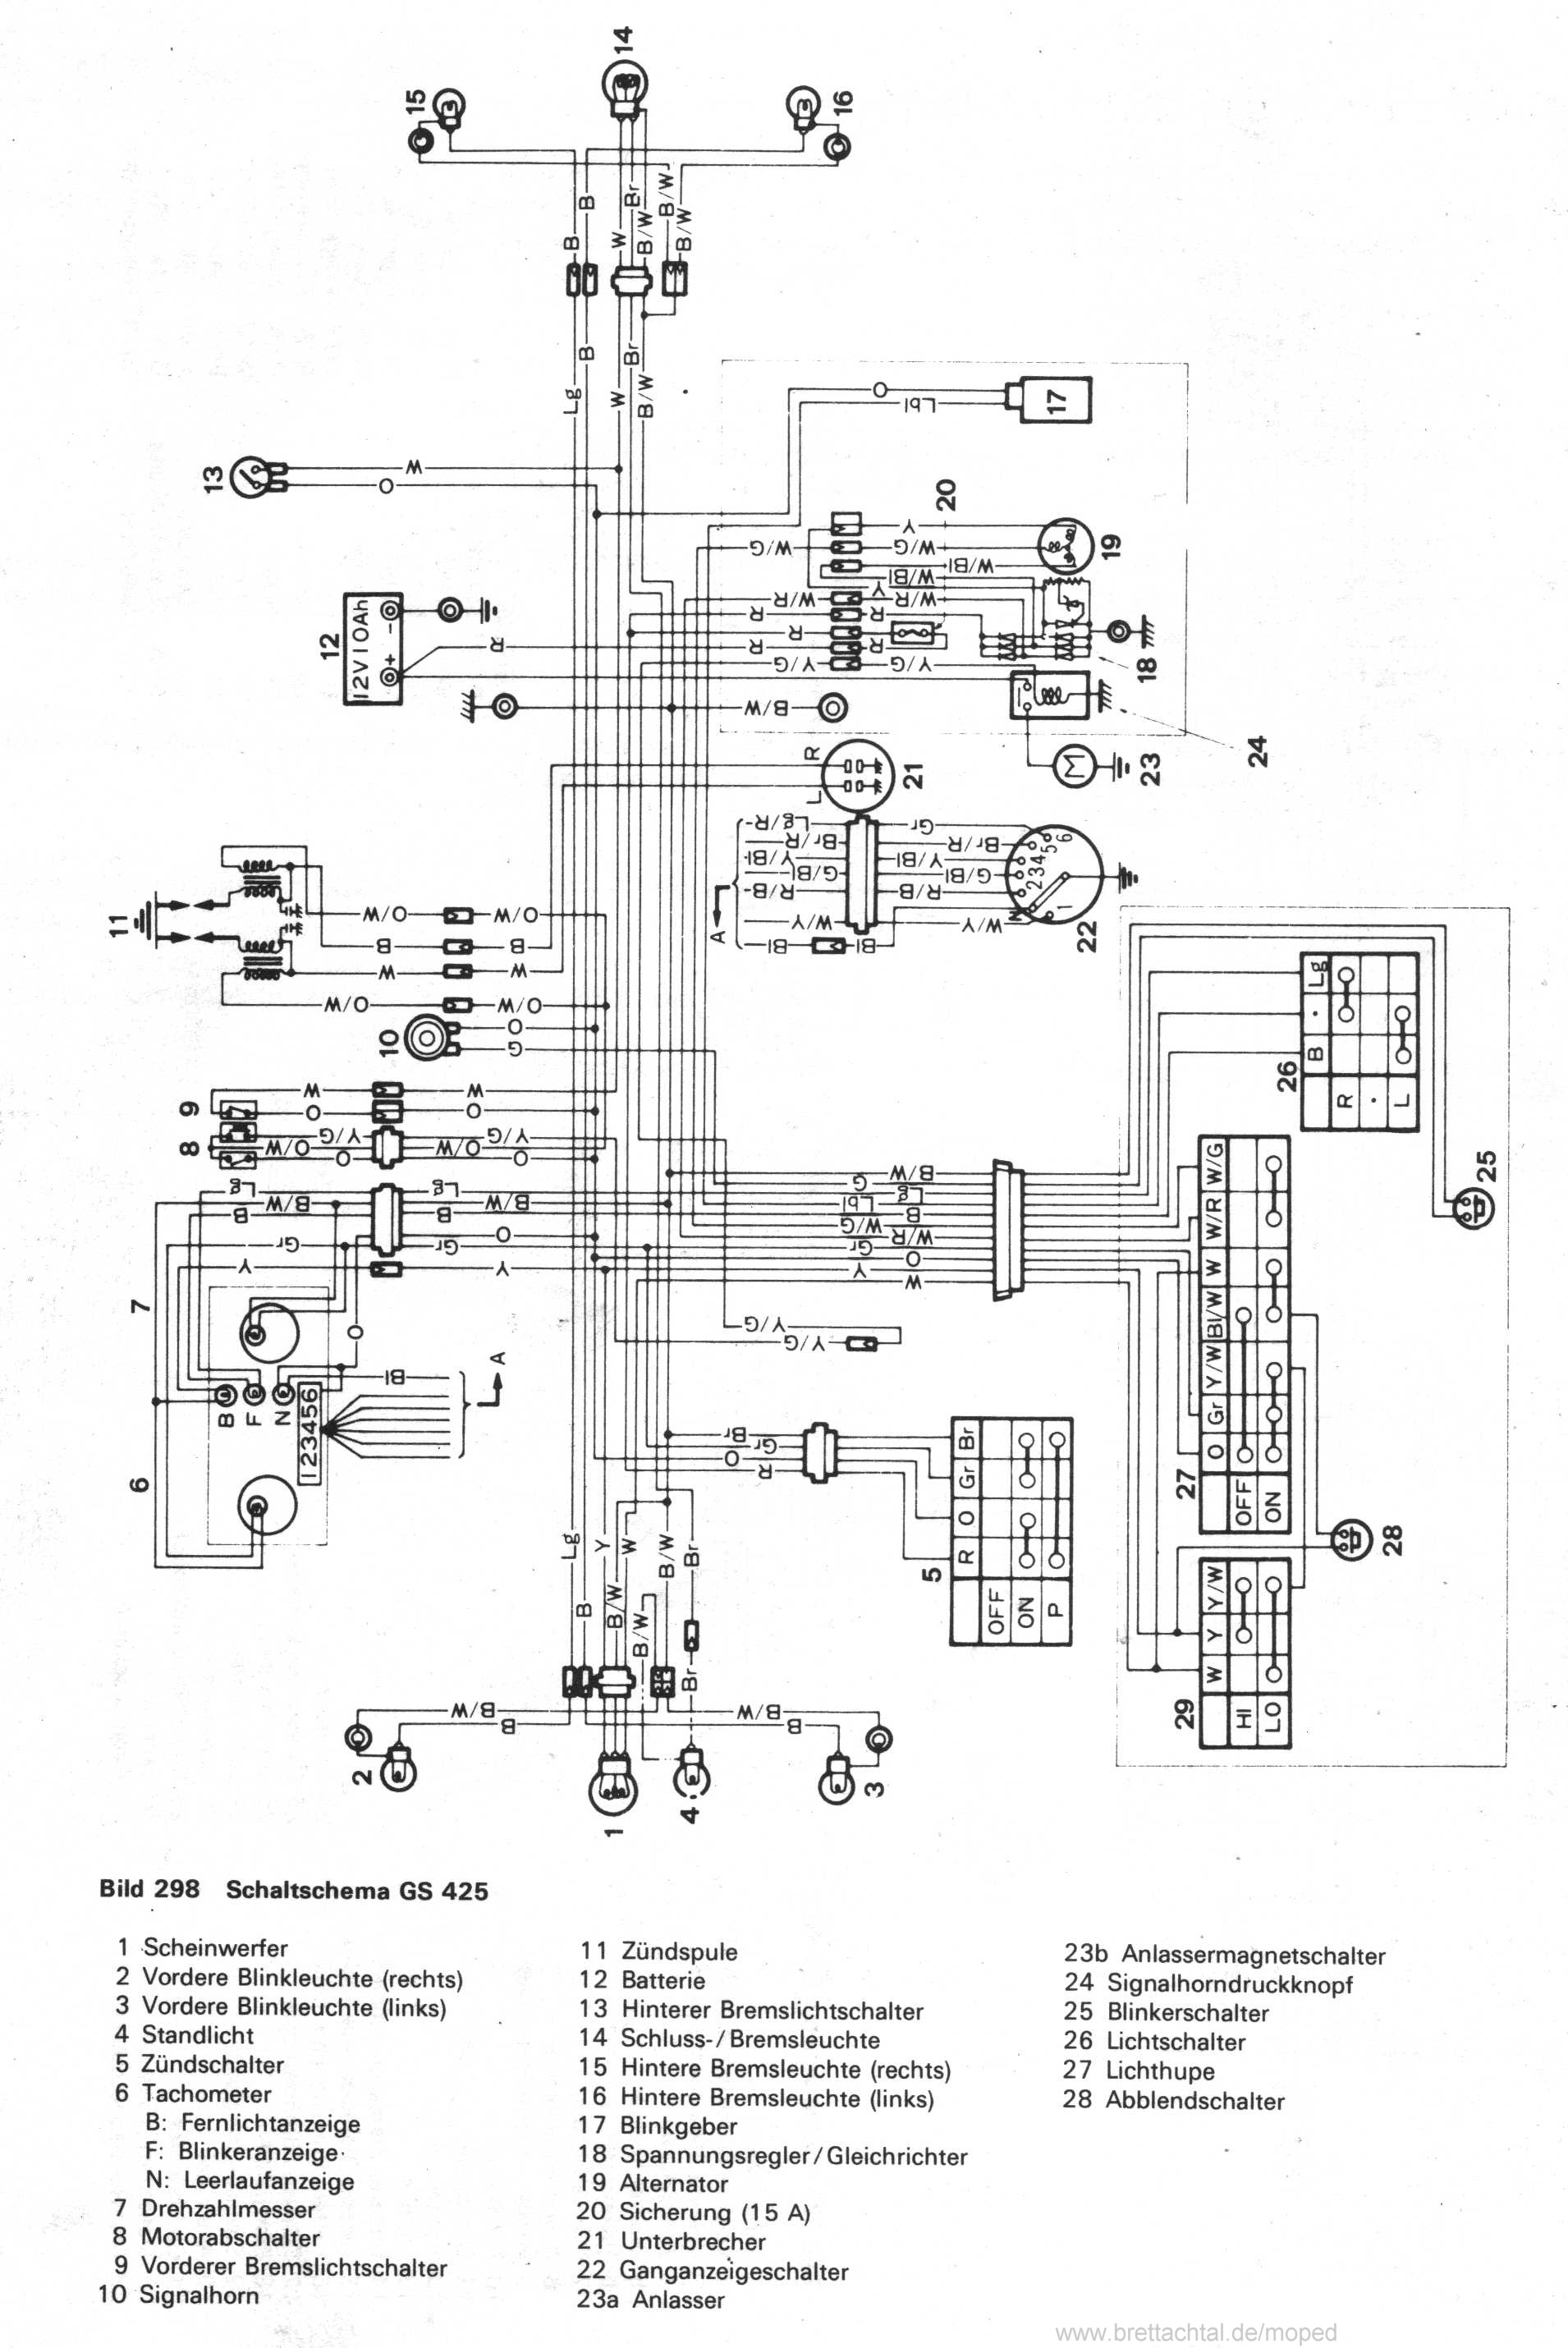 KARCHER WIRING DIAGRAM - Auto Electrical Wiring Diagram